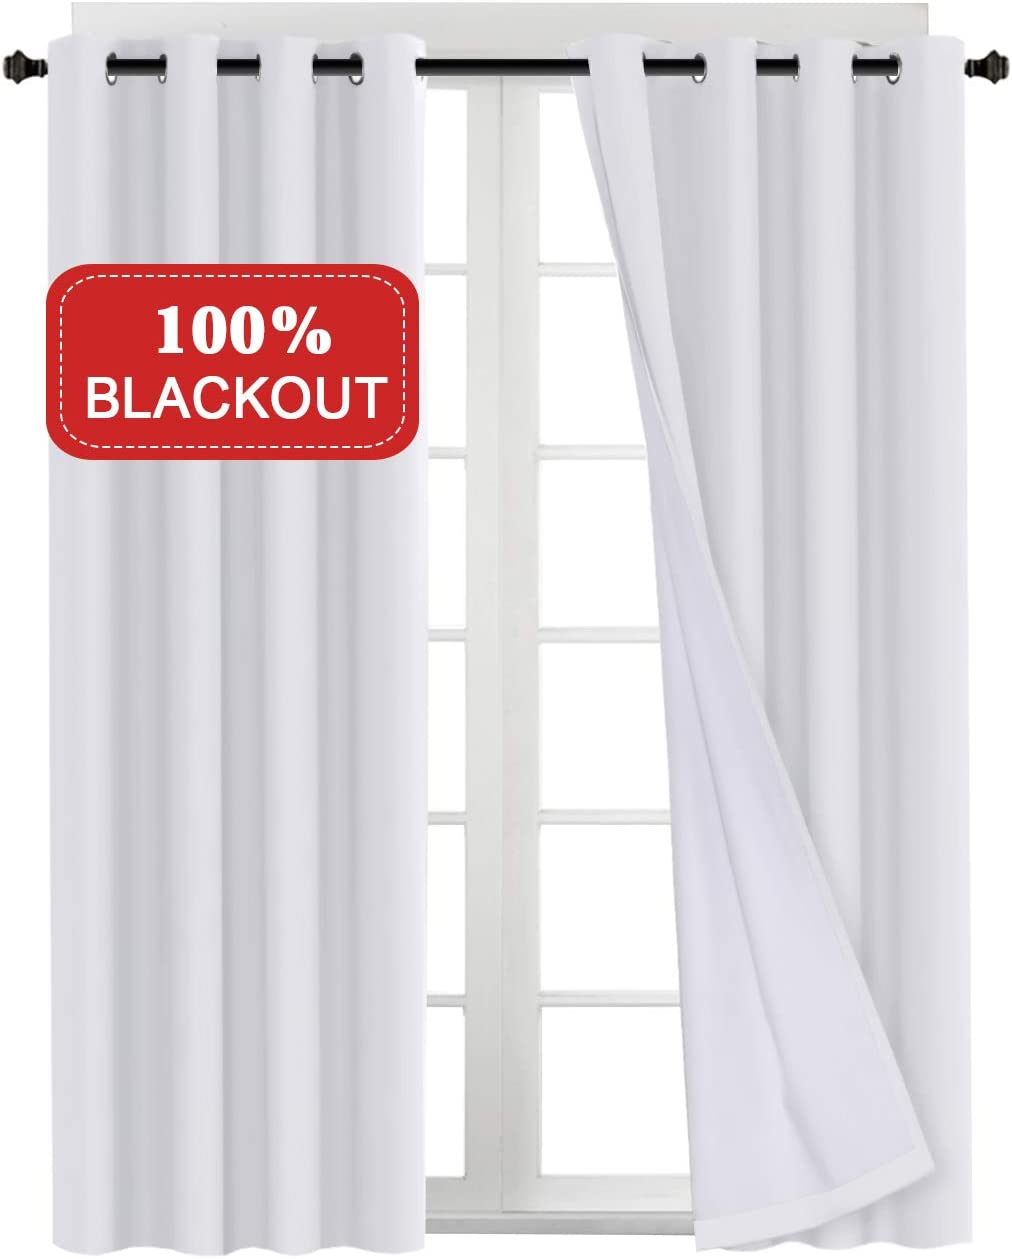 """Turquoize Full Blackout White Curtains with White Liner Thermal Insulated Waterproof Window Treatment Panels for Living Room/Bedroom, 2 Tie-Backs 96 Inch Long Blackout Drapes, 52"""" W x 96"""" L"""